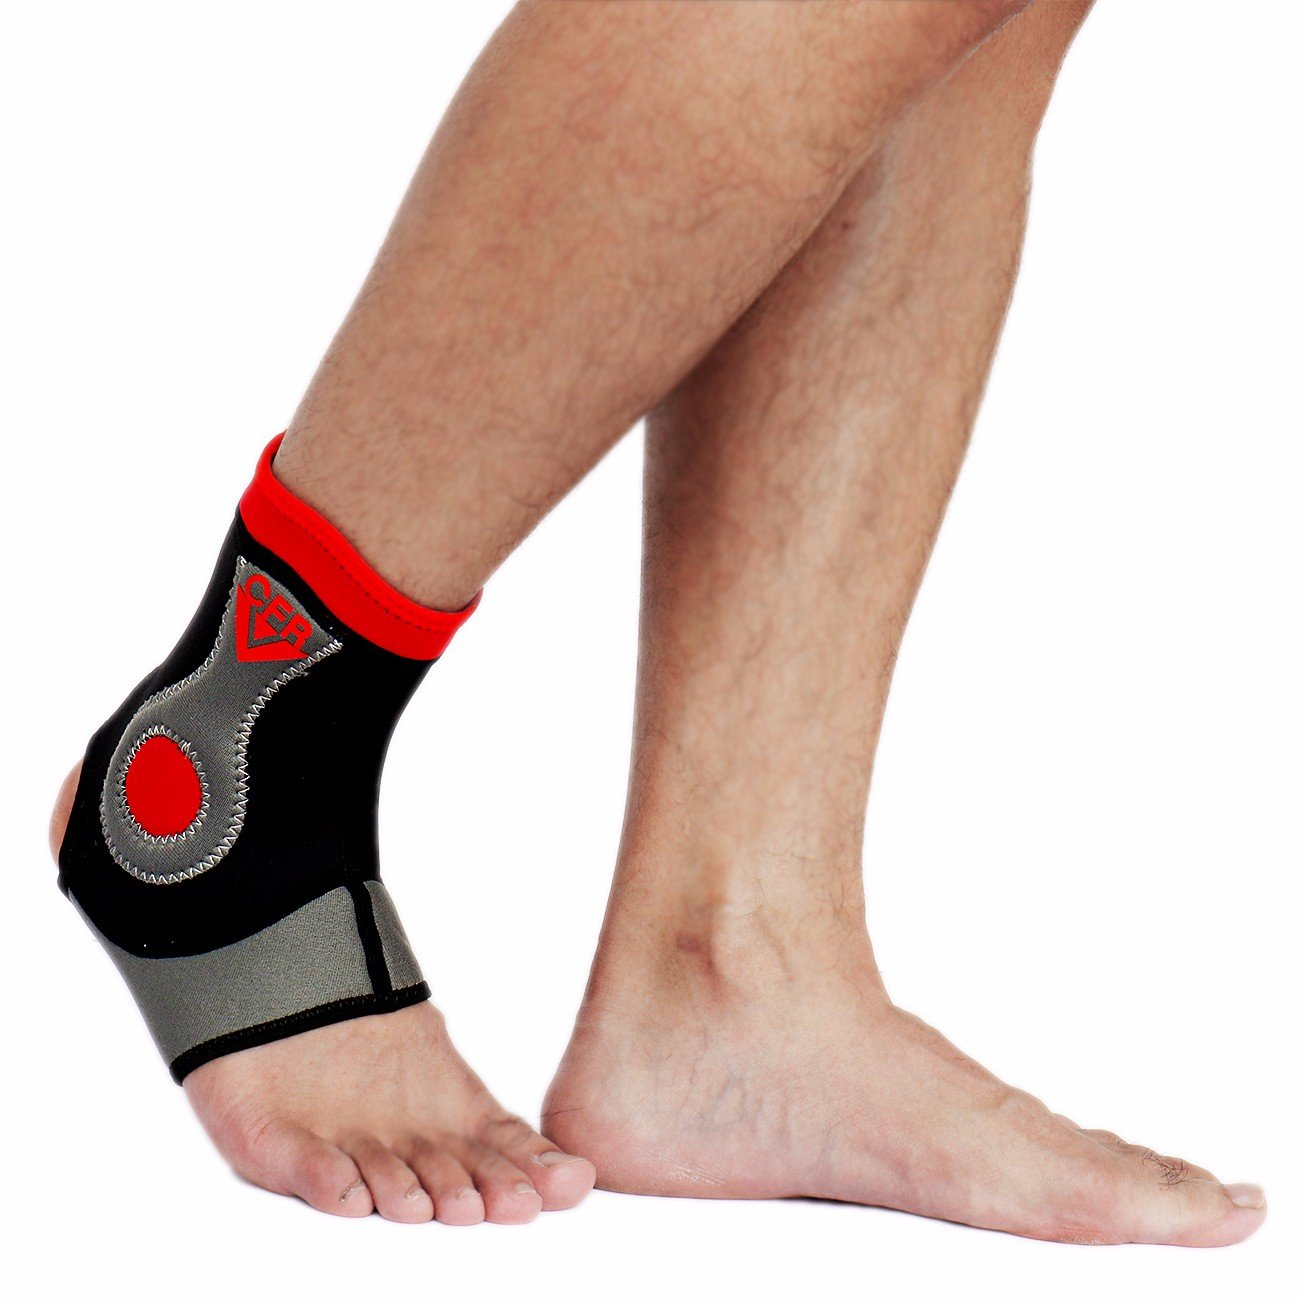 CFR Ankle Support Breathable Ankle Brace for Pain Relief, Sprains, Strains, Arthritis, Torn Tendons Right,XL UPS Post